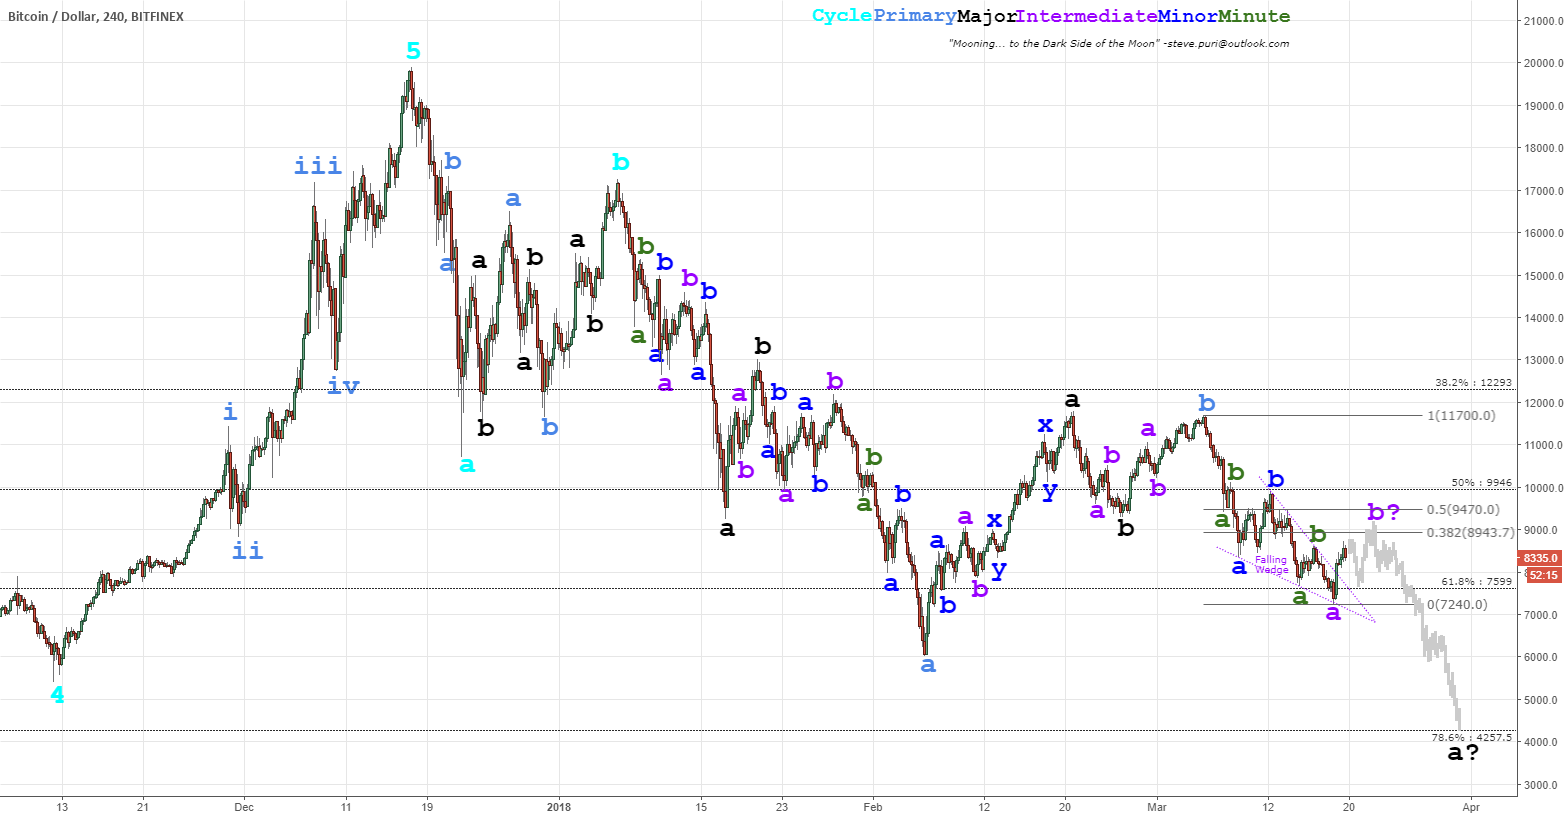 2018 Cryptocurrency Crash (Elliott Wave): Equinox